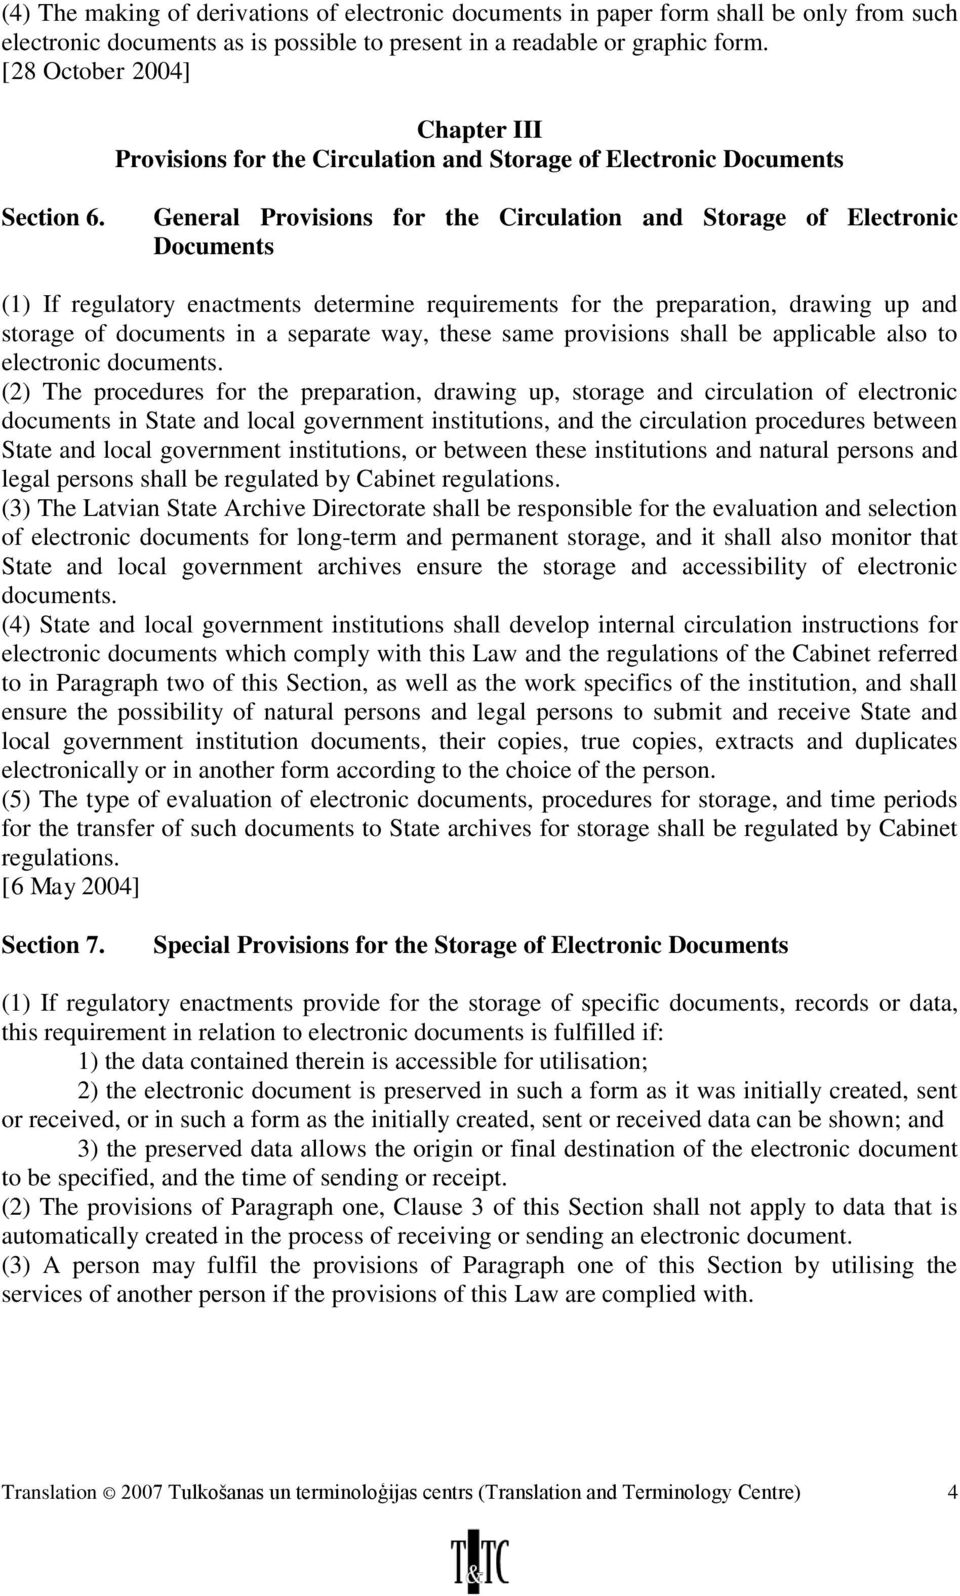 General Provisions for the Circulation and Storage of Electronic Documents (1) If regulatory enactments determine requirements for the preparation, drawing up and storage of documents in a separate